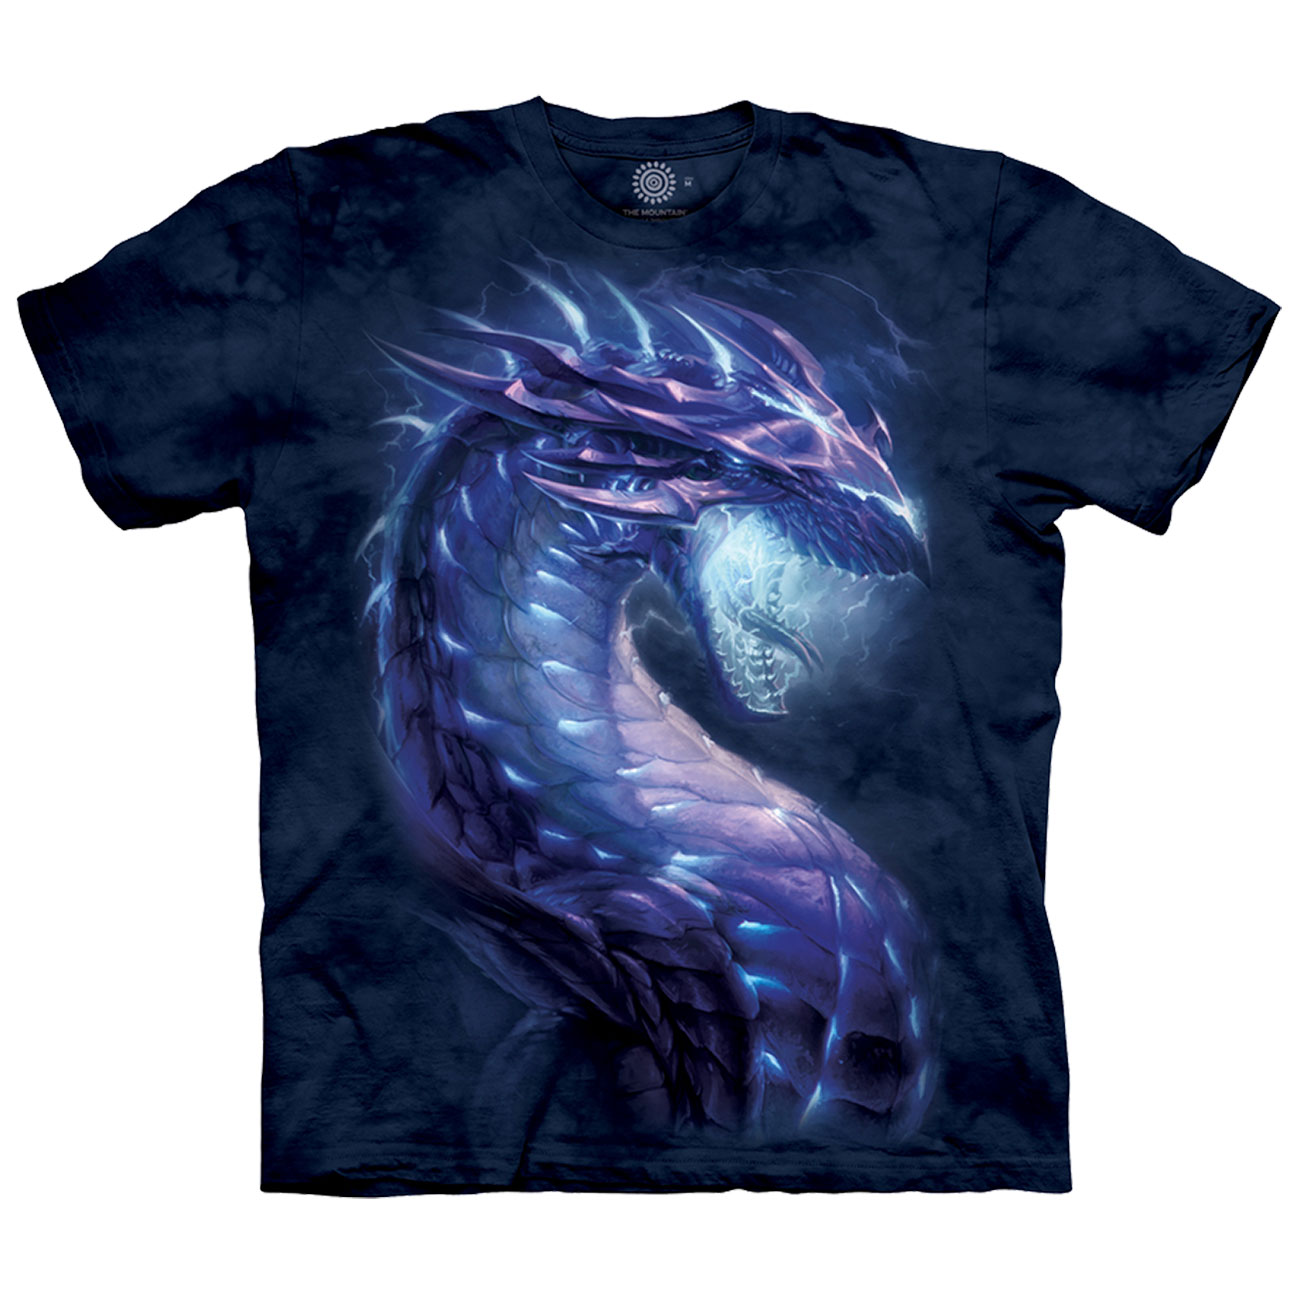 The Mountain T-Shirt Stormborn Dragon Fantasy 0